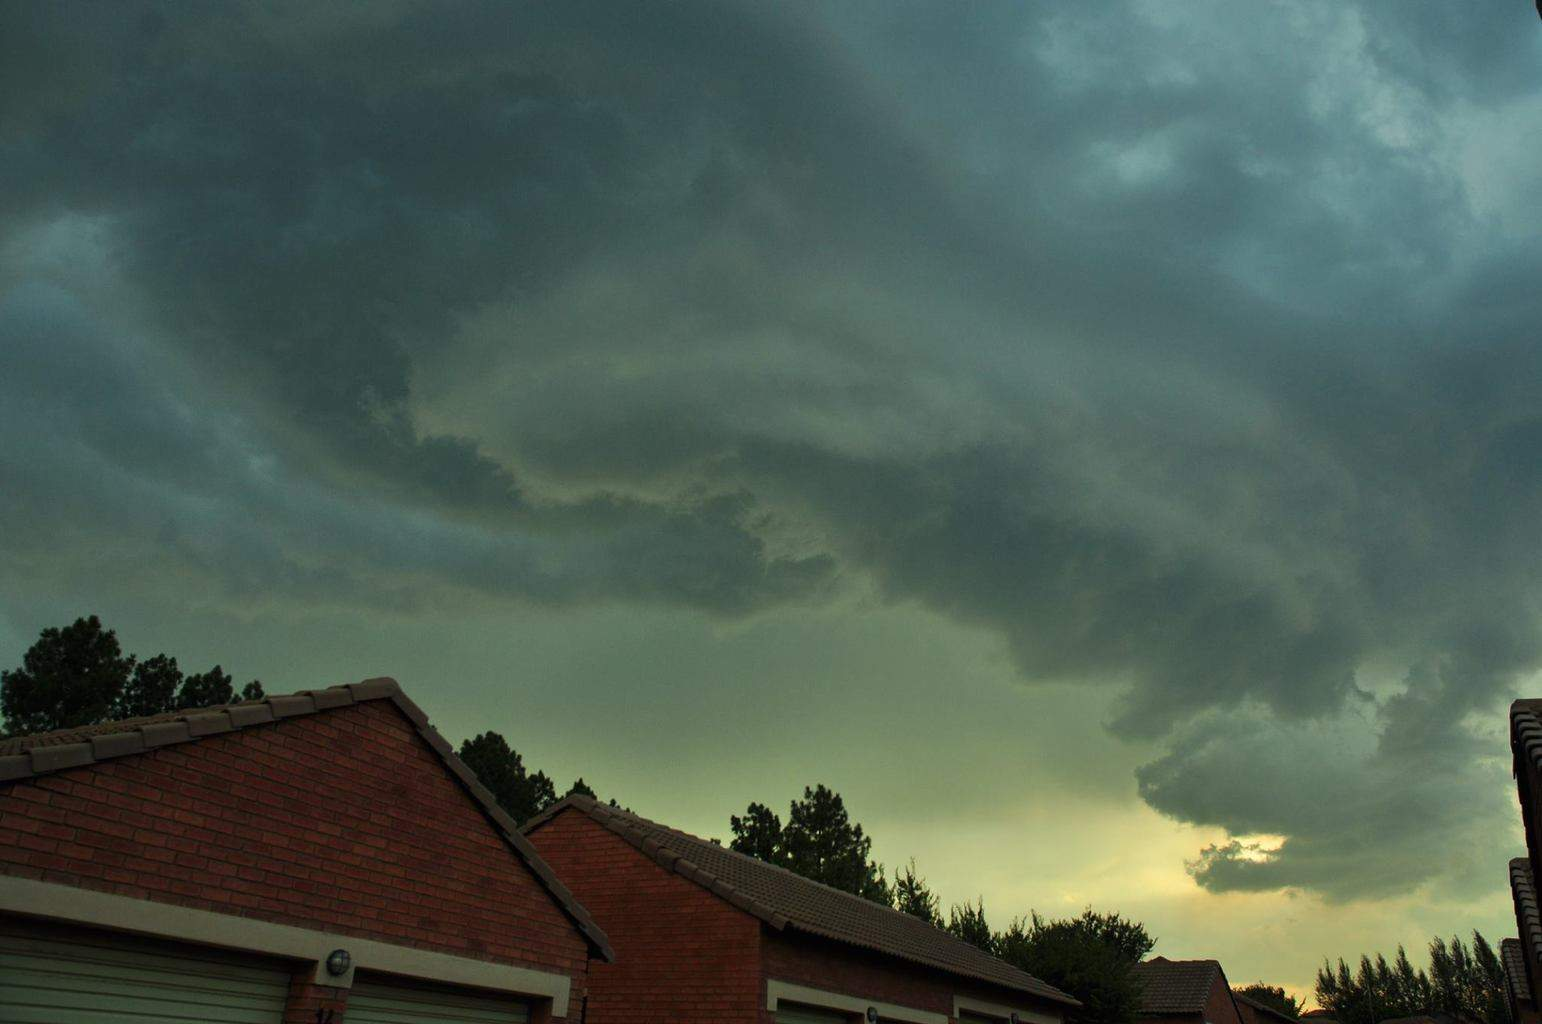 A spectacular but very short lived shelf cloud as it moved over Moreleta Park in Pretoria, South Africa early this evening and quickly began breaking apart.